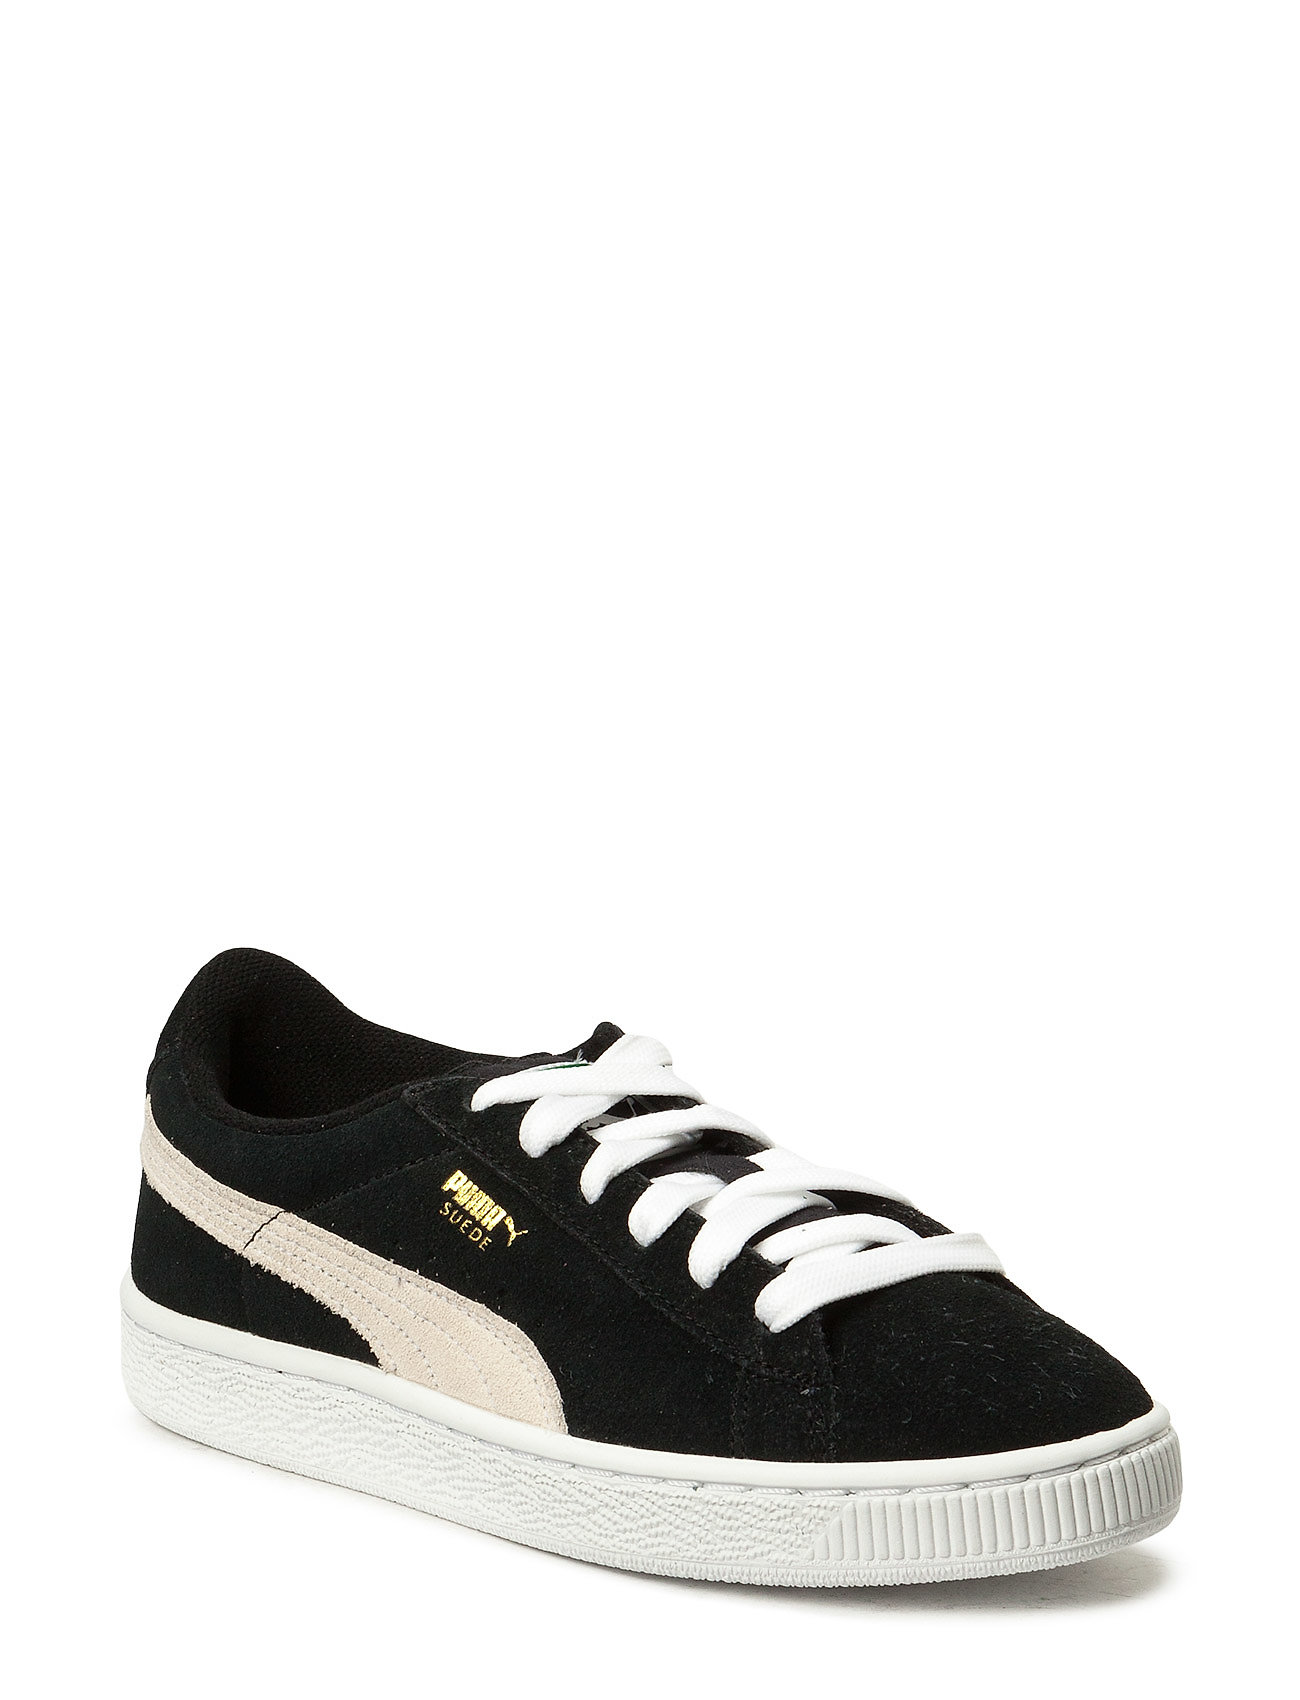 PUMA Suede Jr - BLACK-WHITE